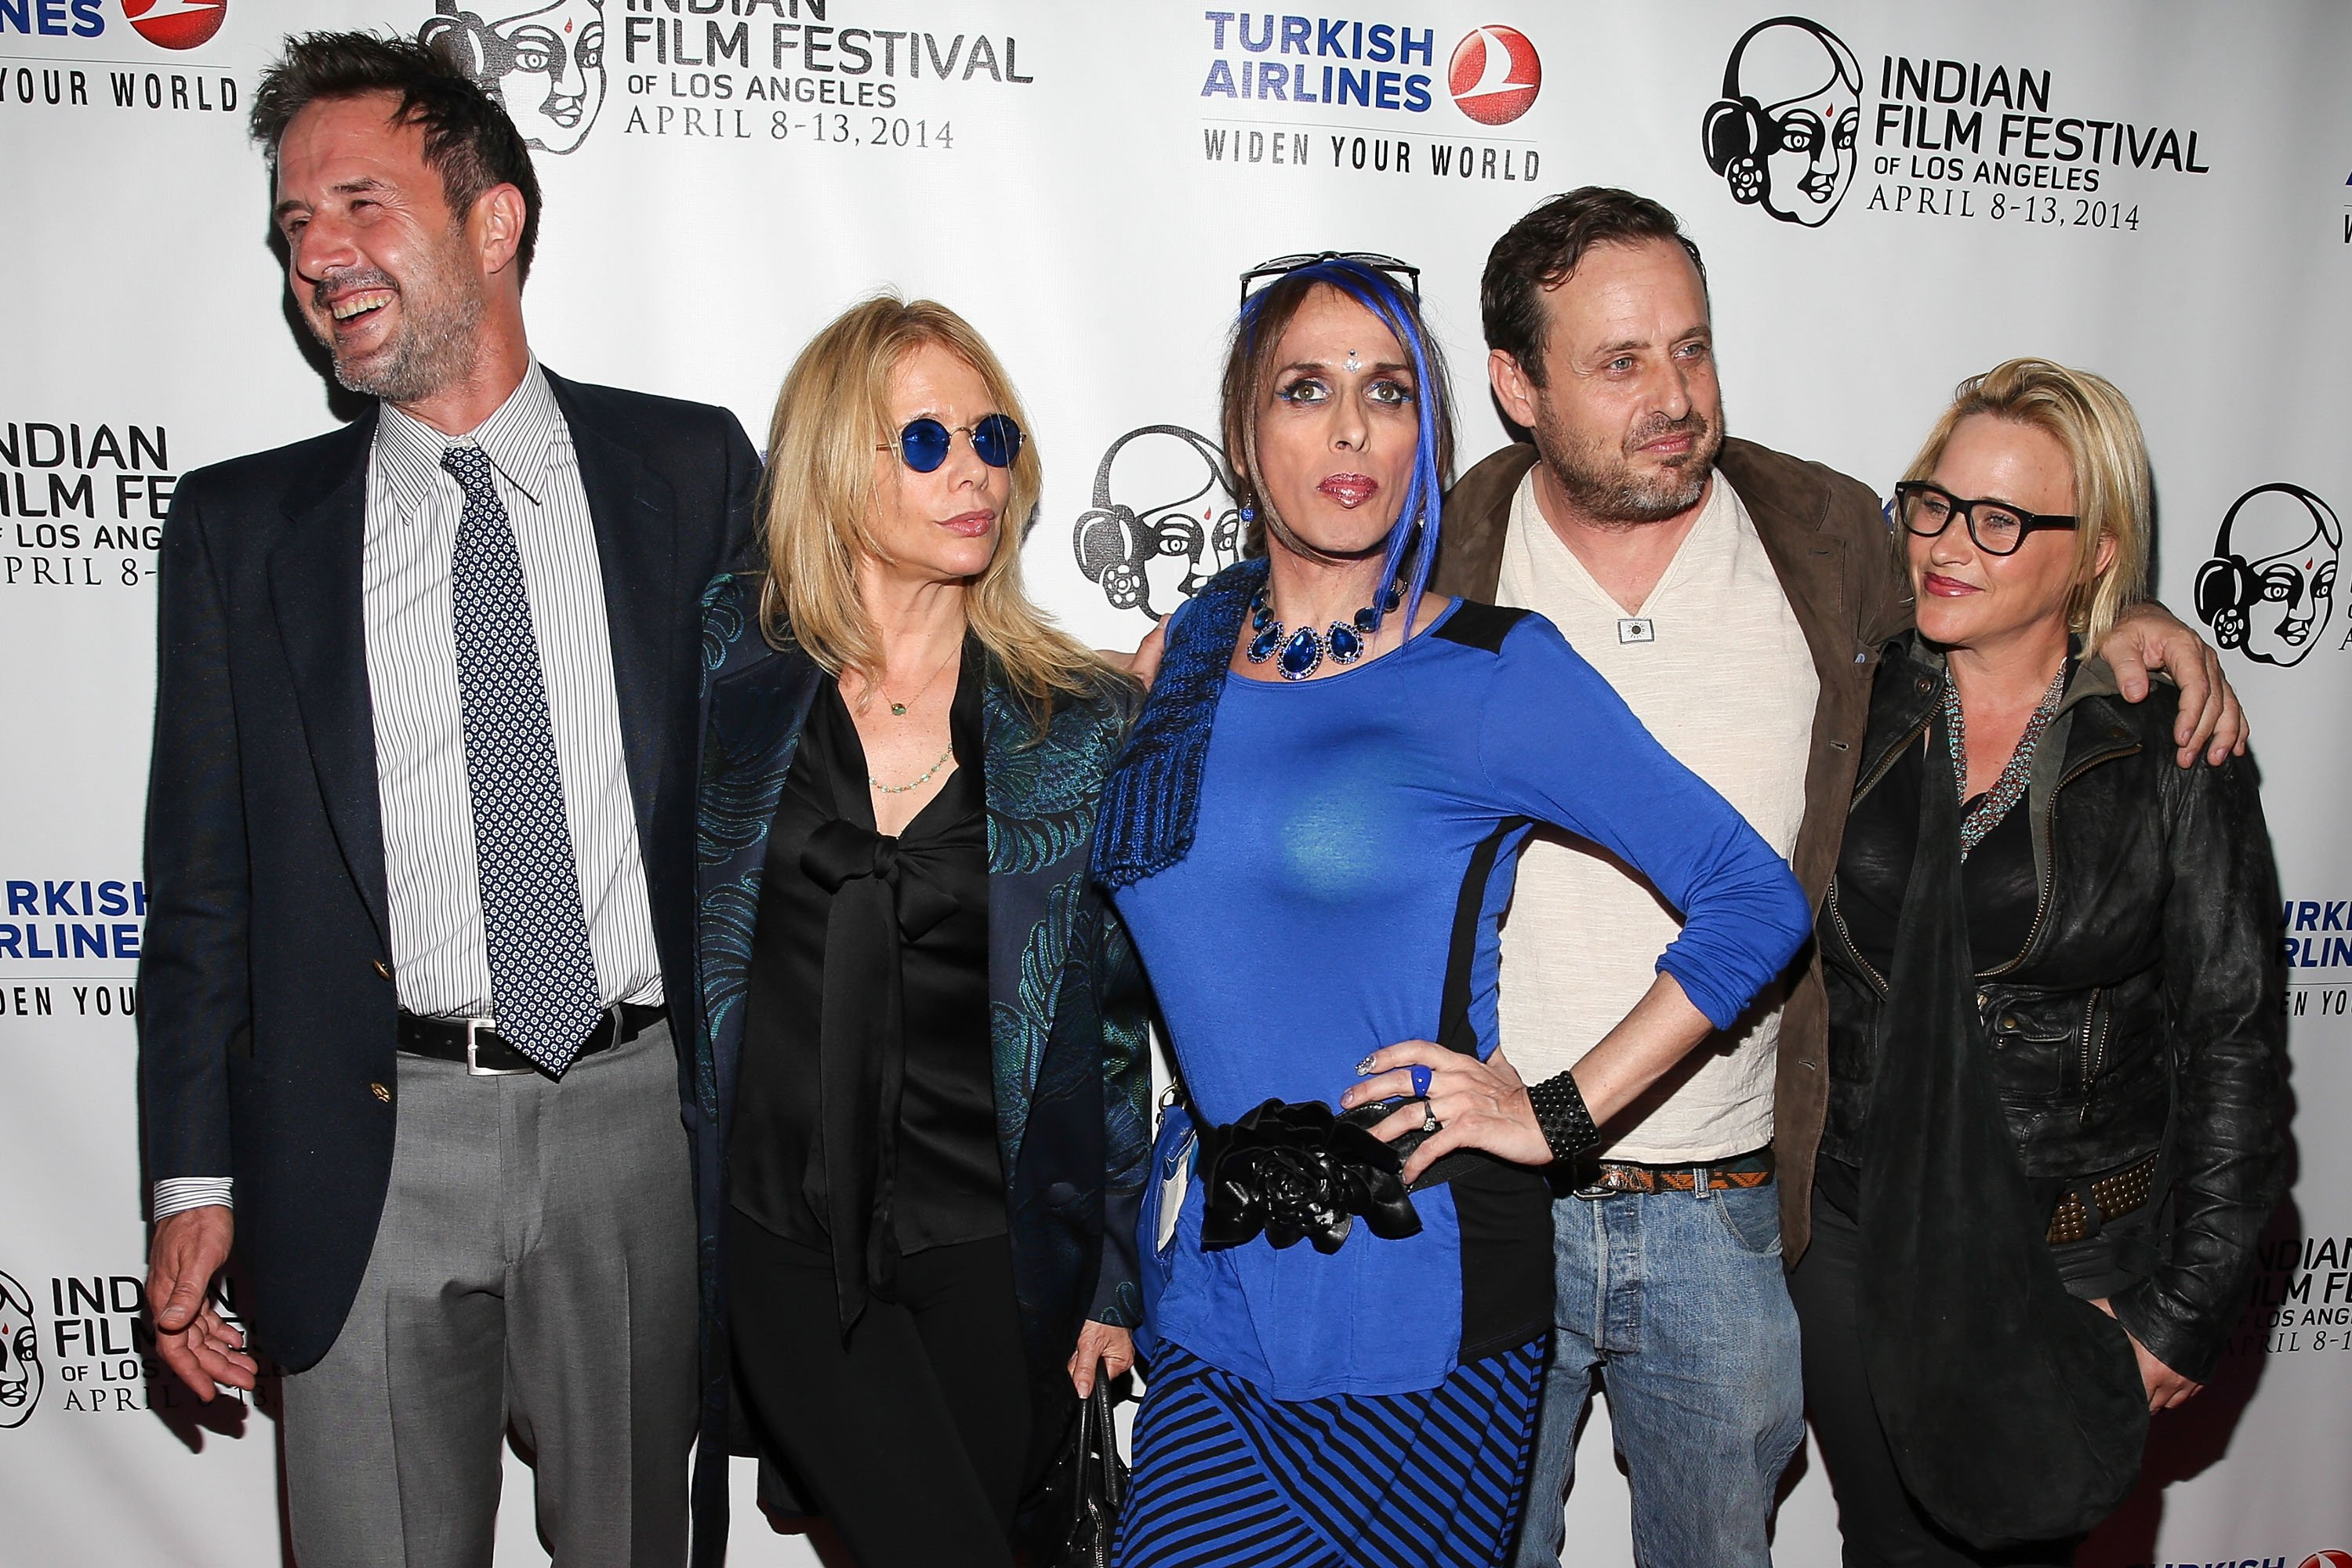 David Arquette, Rosanna Arquette, Alexis Arquette, Richmond Arquette, and Patricia Arquette attend the Indian Film Festival Of Los Angeles Opening Night Gala for 'Sold' at ArcLight Cinemas on April 8, 2014 in Hollywood